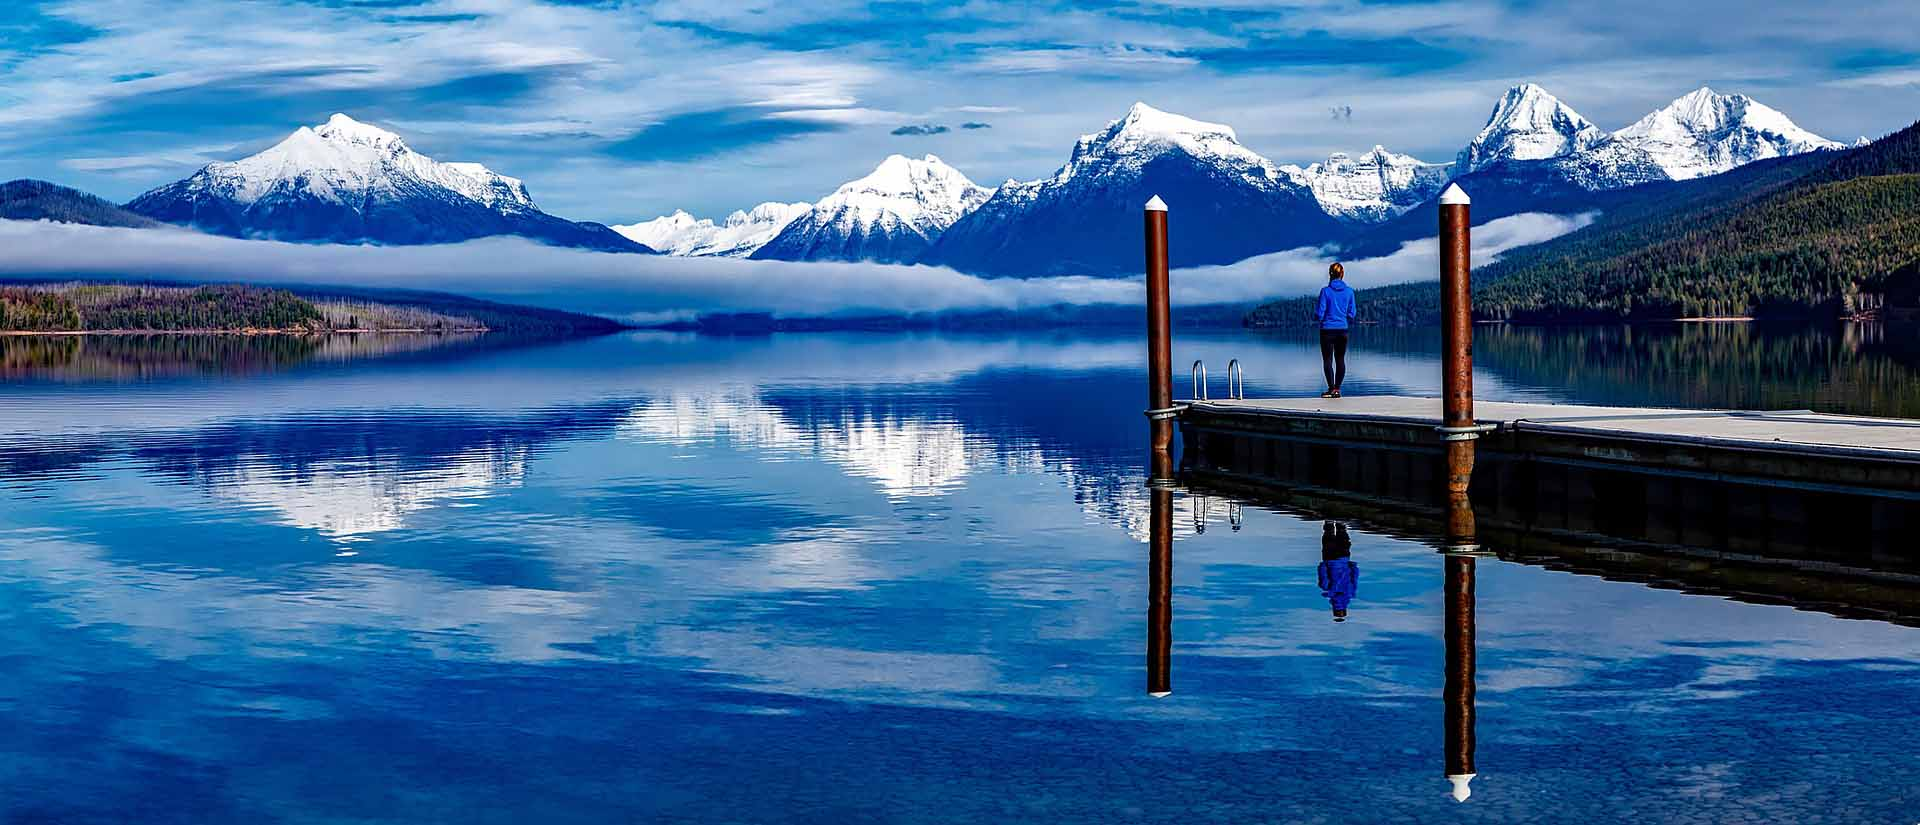 A woman gazes out on a lake that reflects snow-peaked mountains on the horizon.